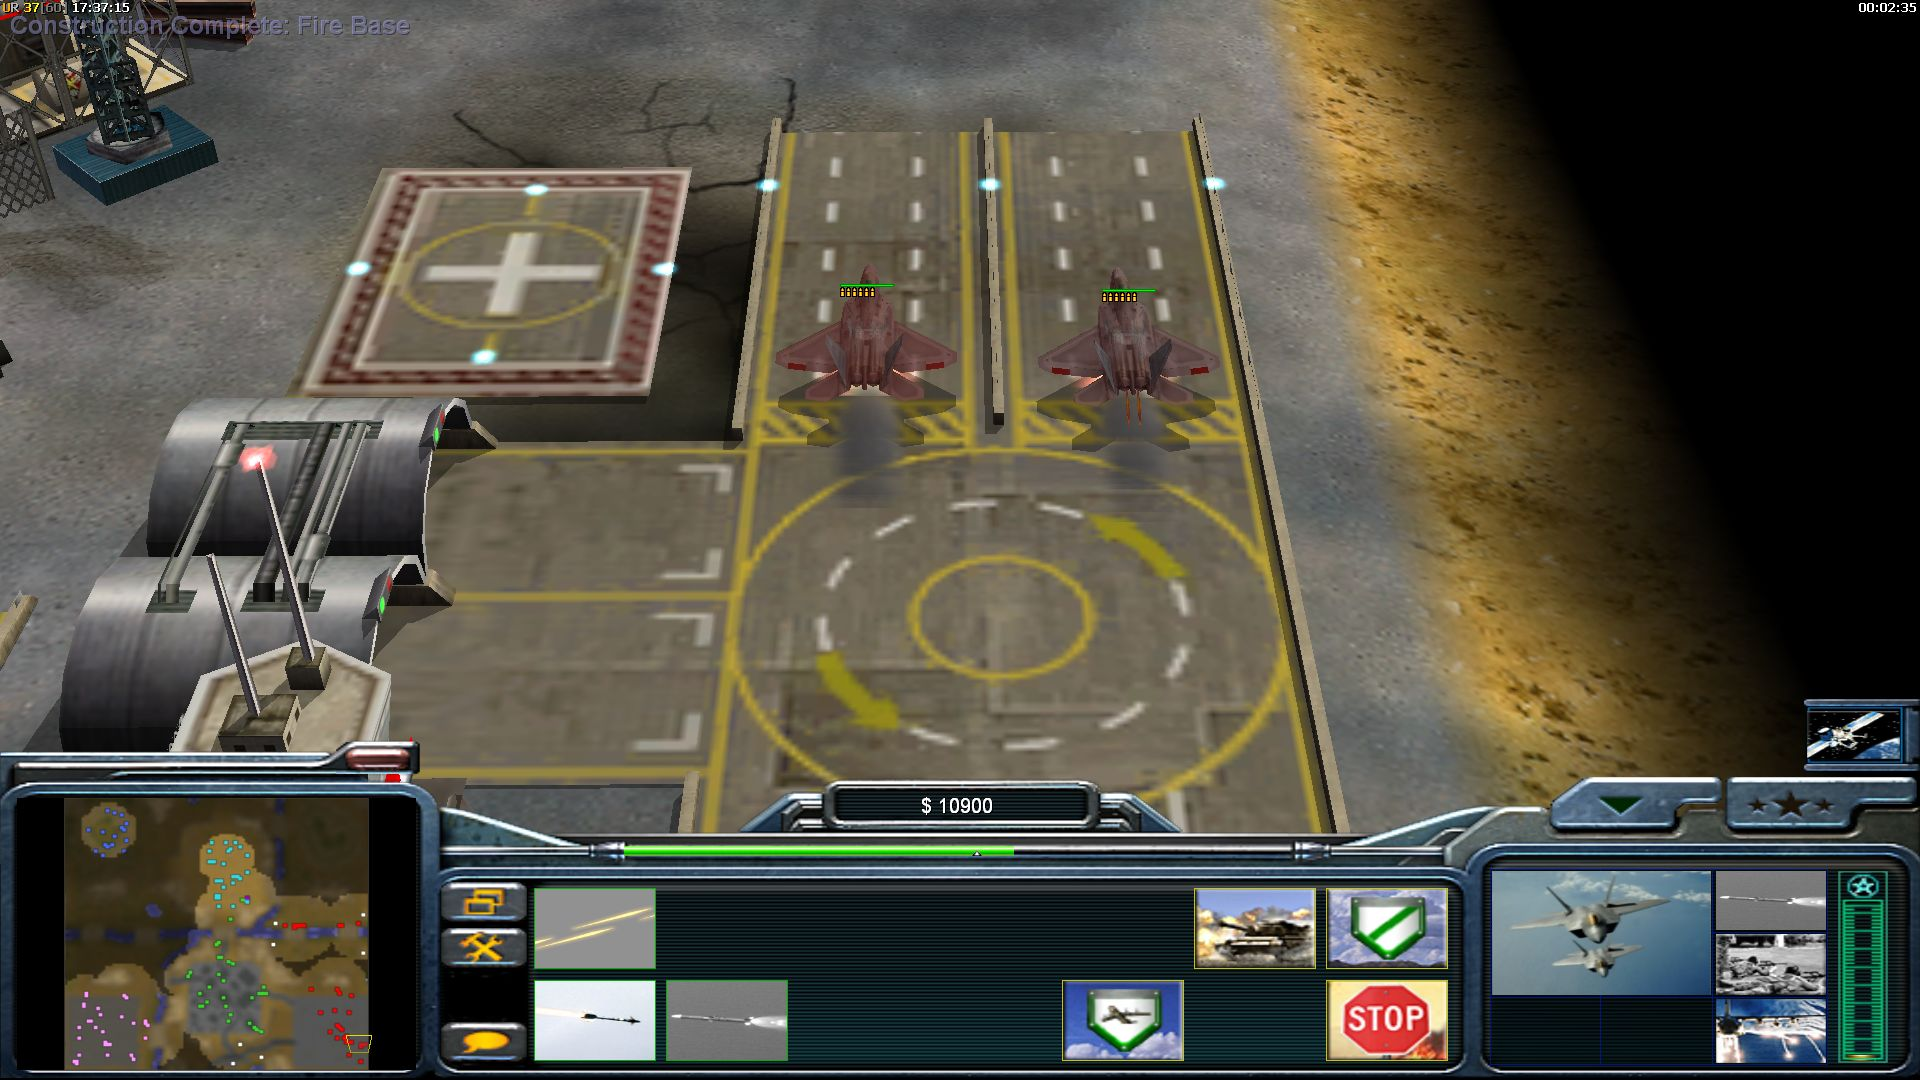 Usaf image - earth conflict mod for cc: generals zero hour